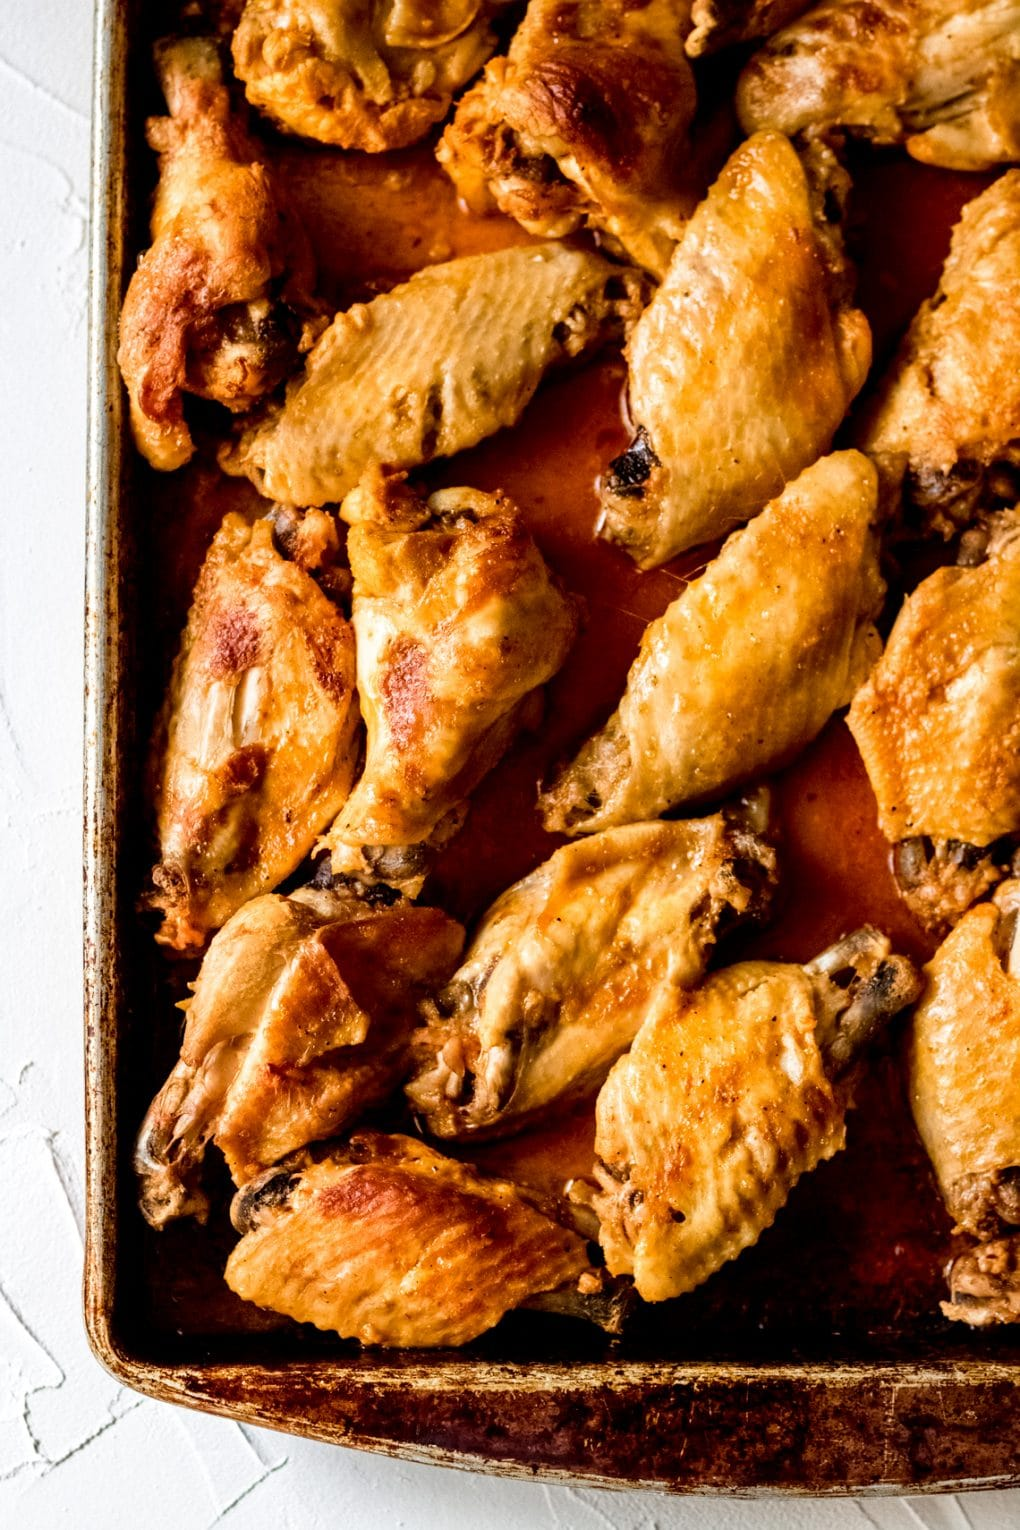 a sheet pan of chicken wings that have been broiled